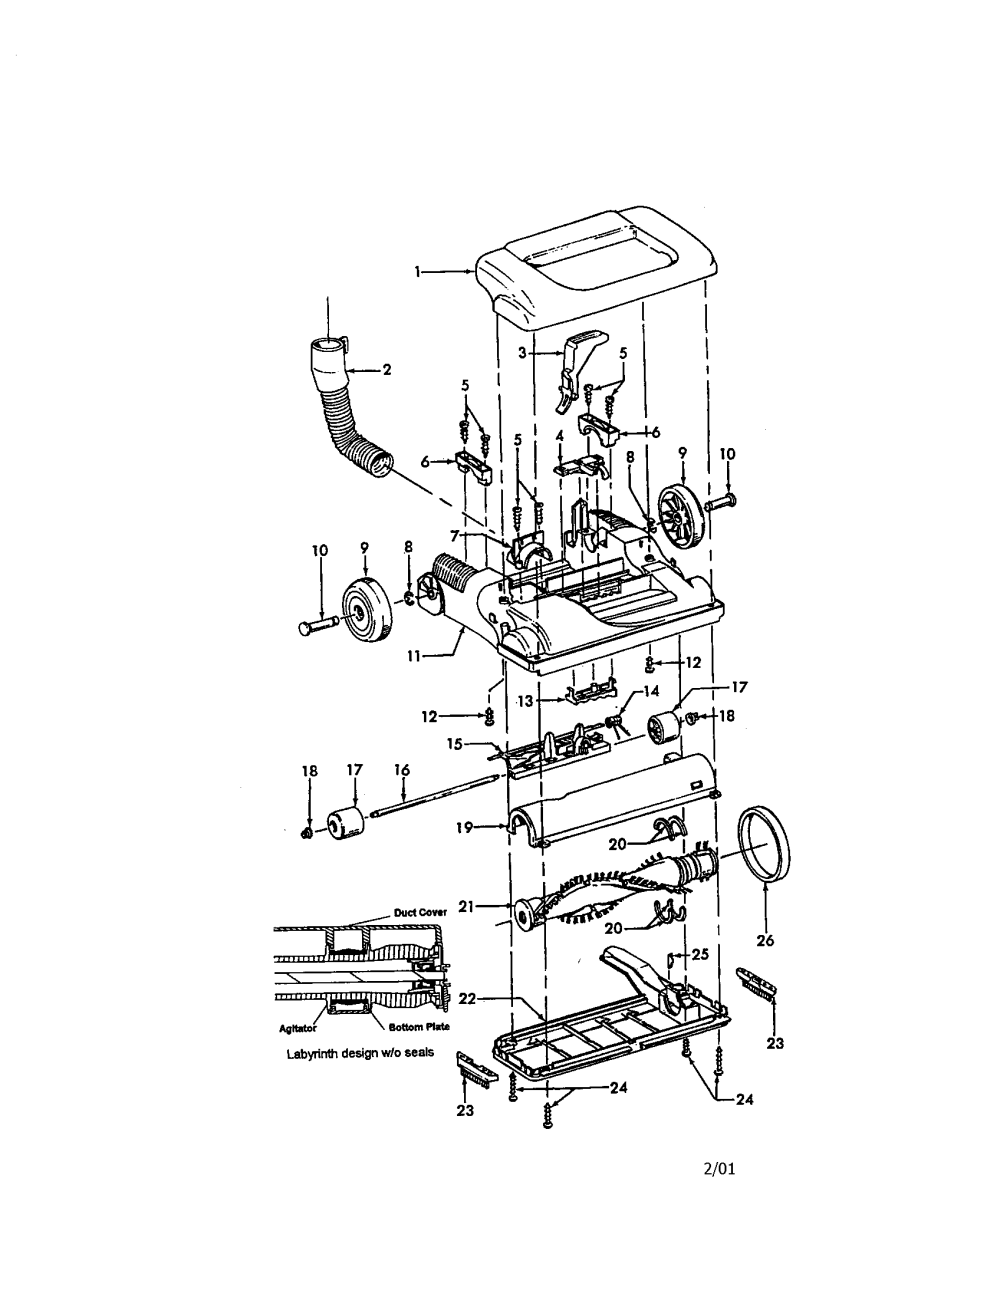 medium resolution of hoover windtunnel upright parts model u5443900 sears hoover bagless vacuum hoover vacuum cleaner wiring diagram